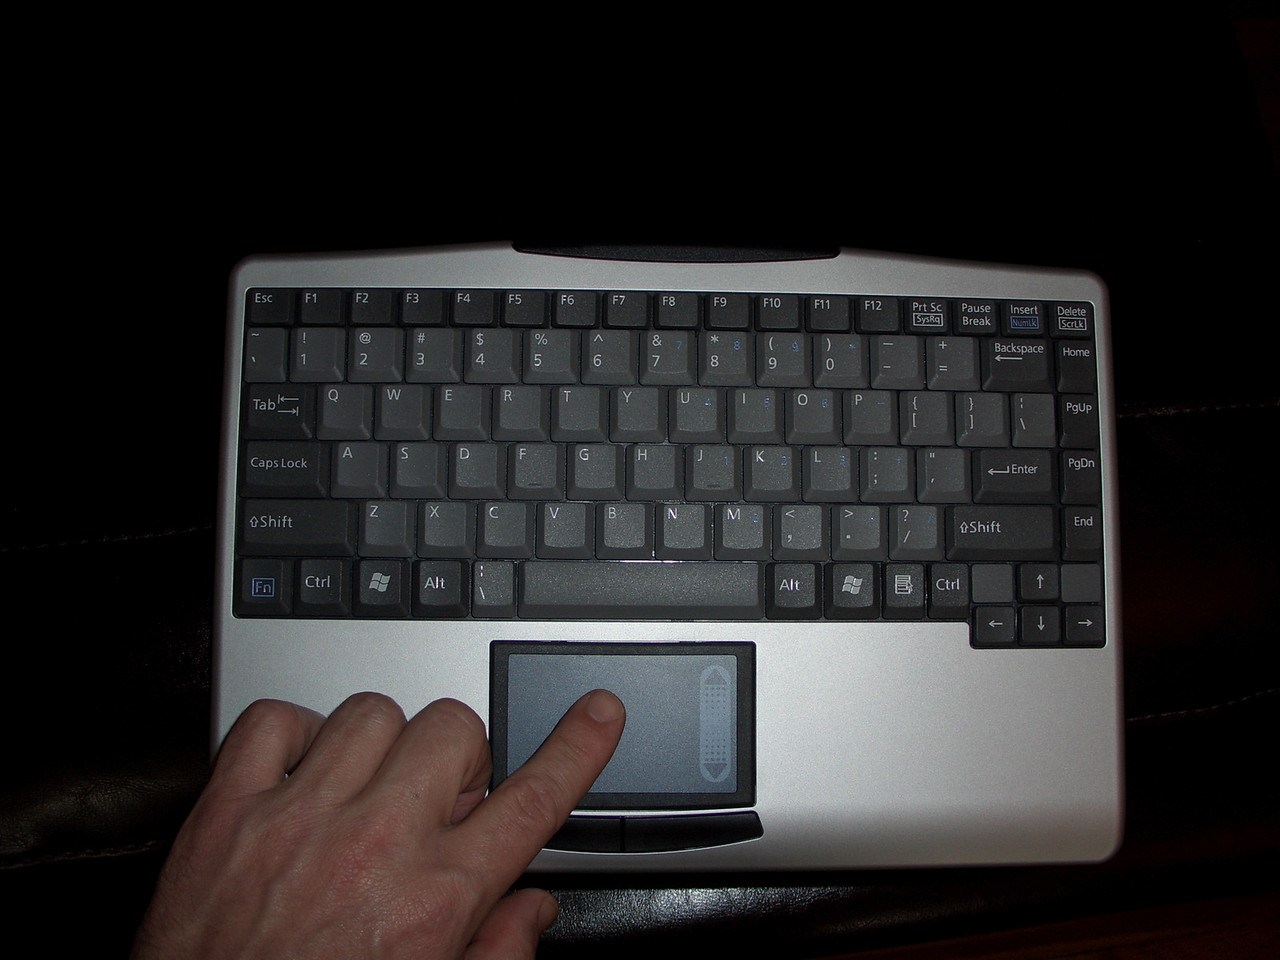 The touch pad functions as a mouse, much like you might find on a laptop.  Nice clickey-action on the keys too.